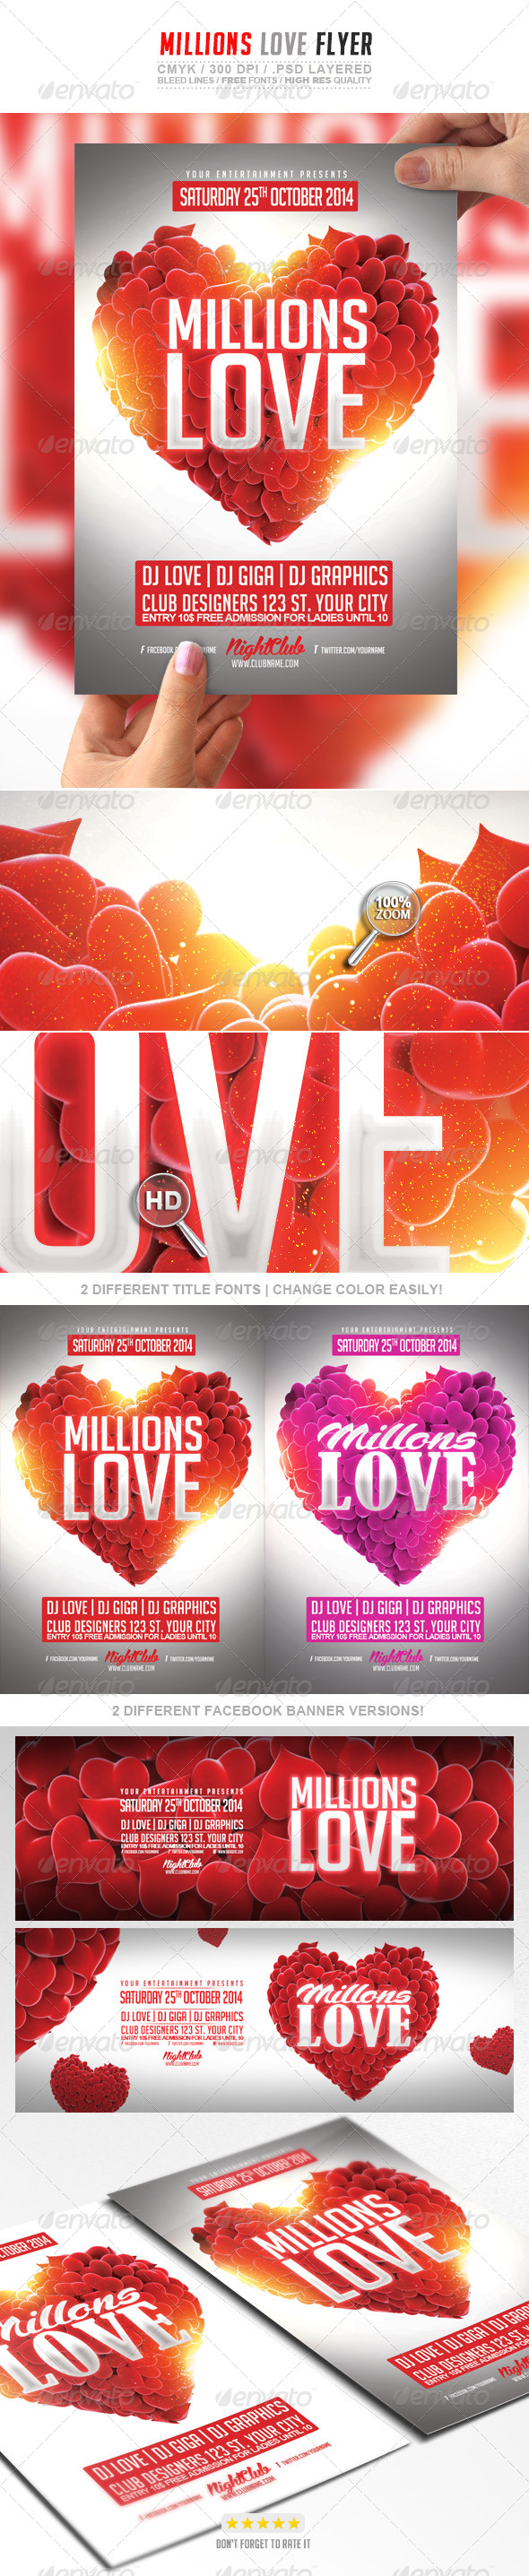 GraphicRiver Millions Love Flyer 7667528